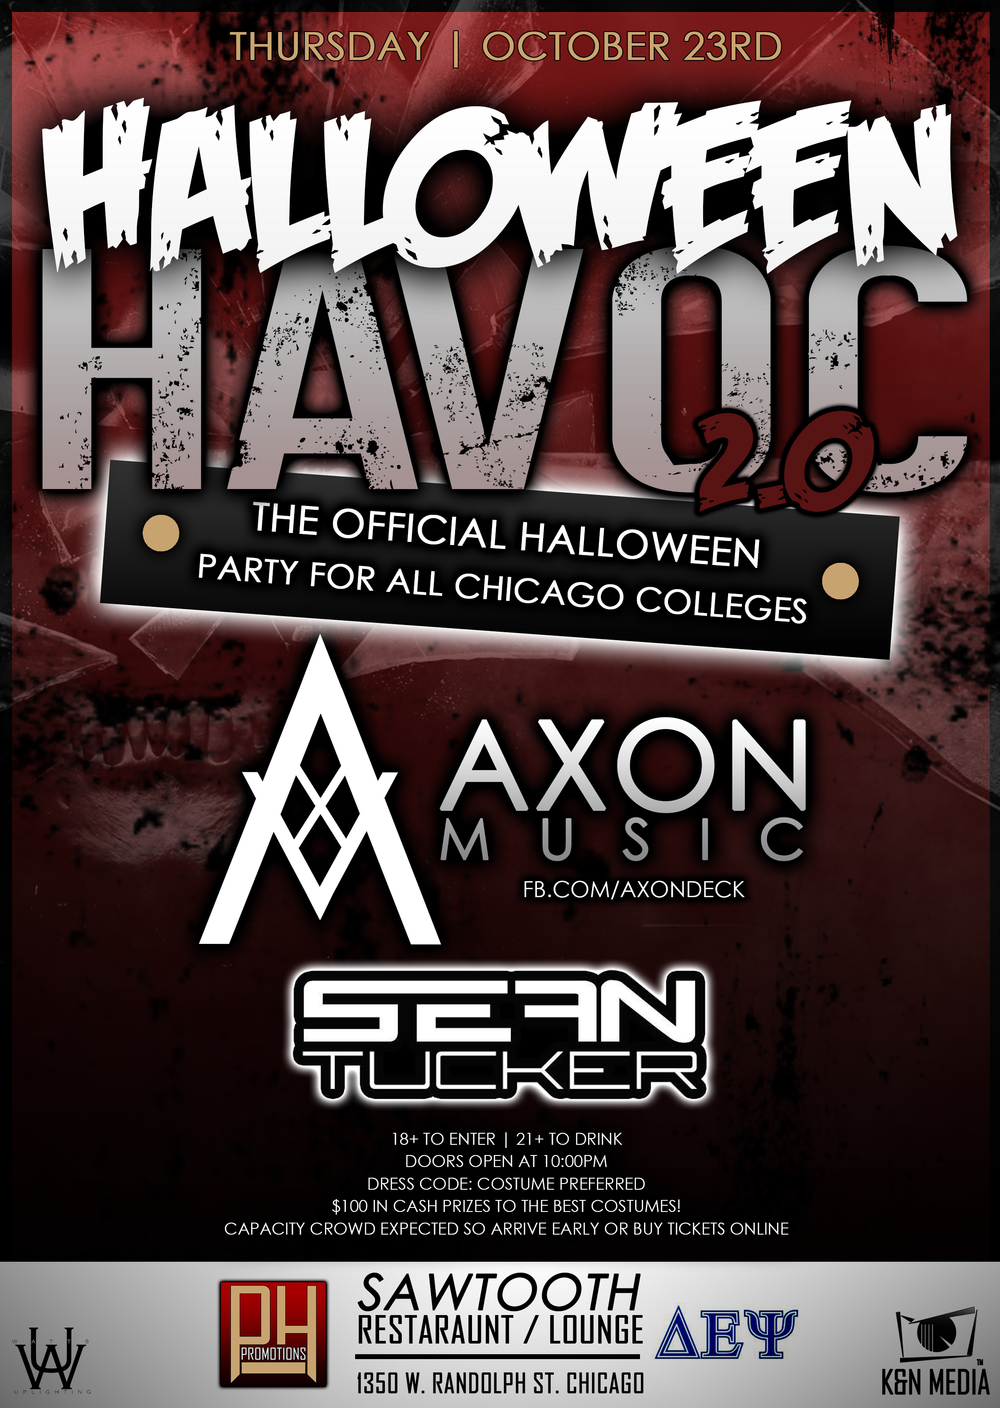 Halloween Havoc 2 Flyer Design 1b - K&N Media.jpg